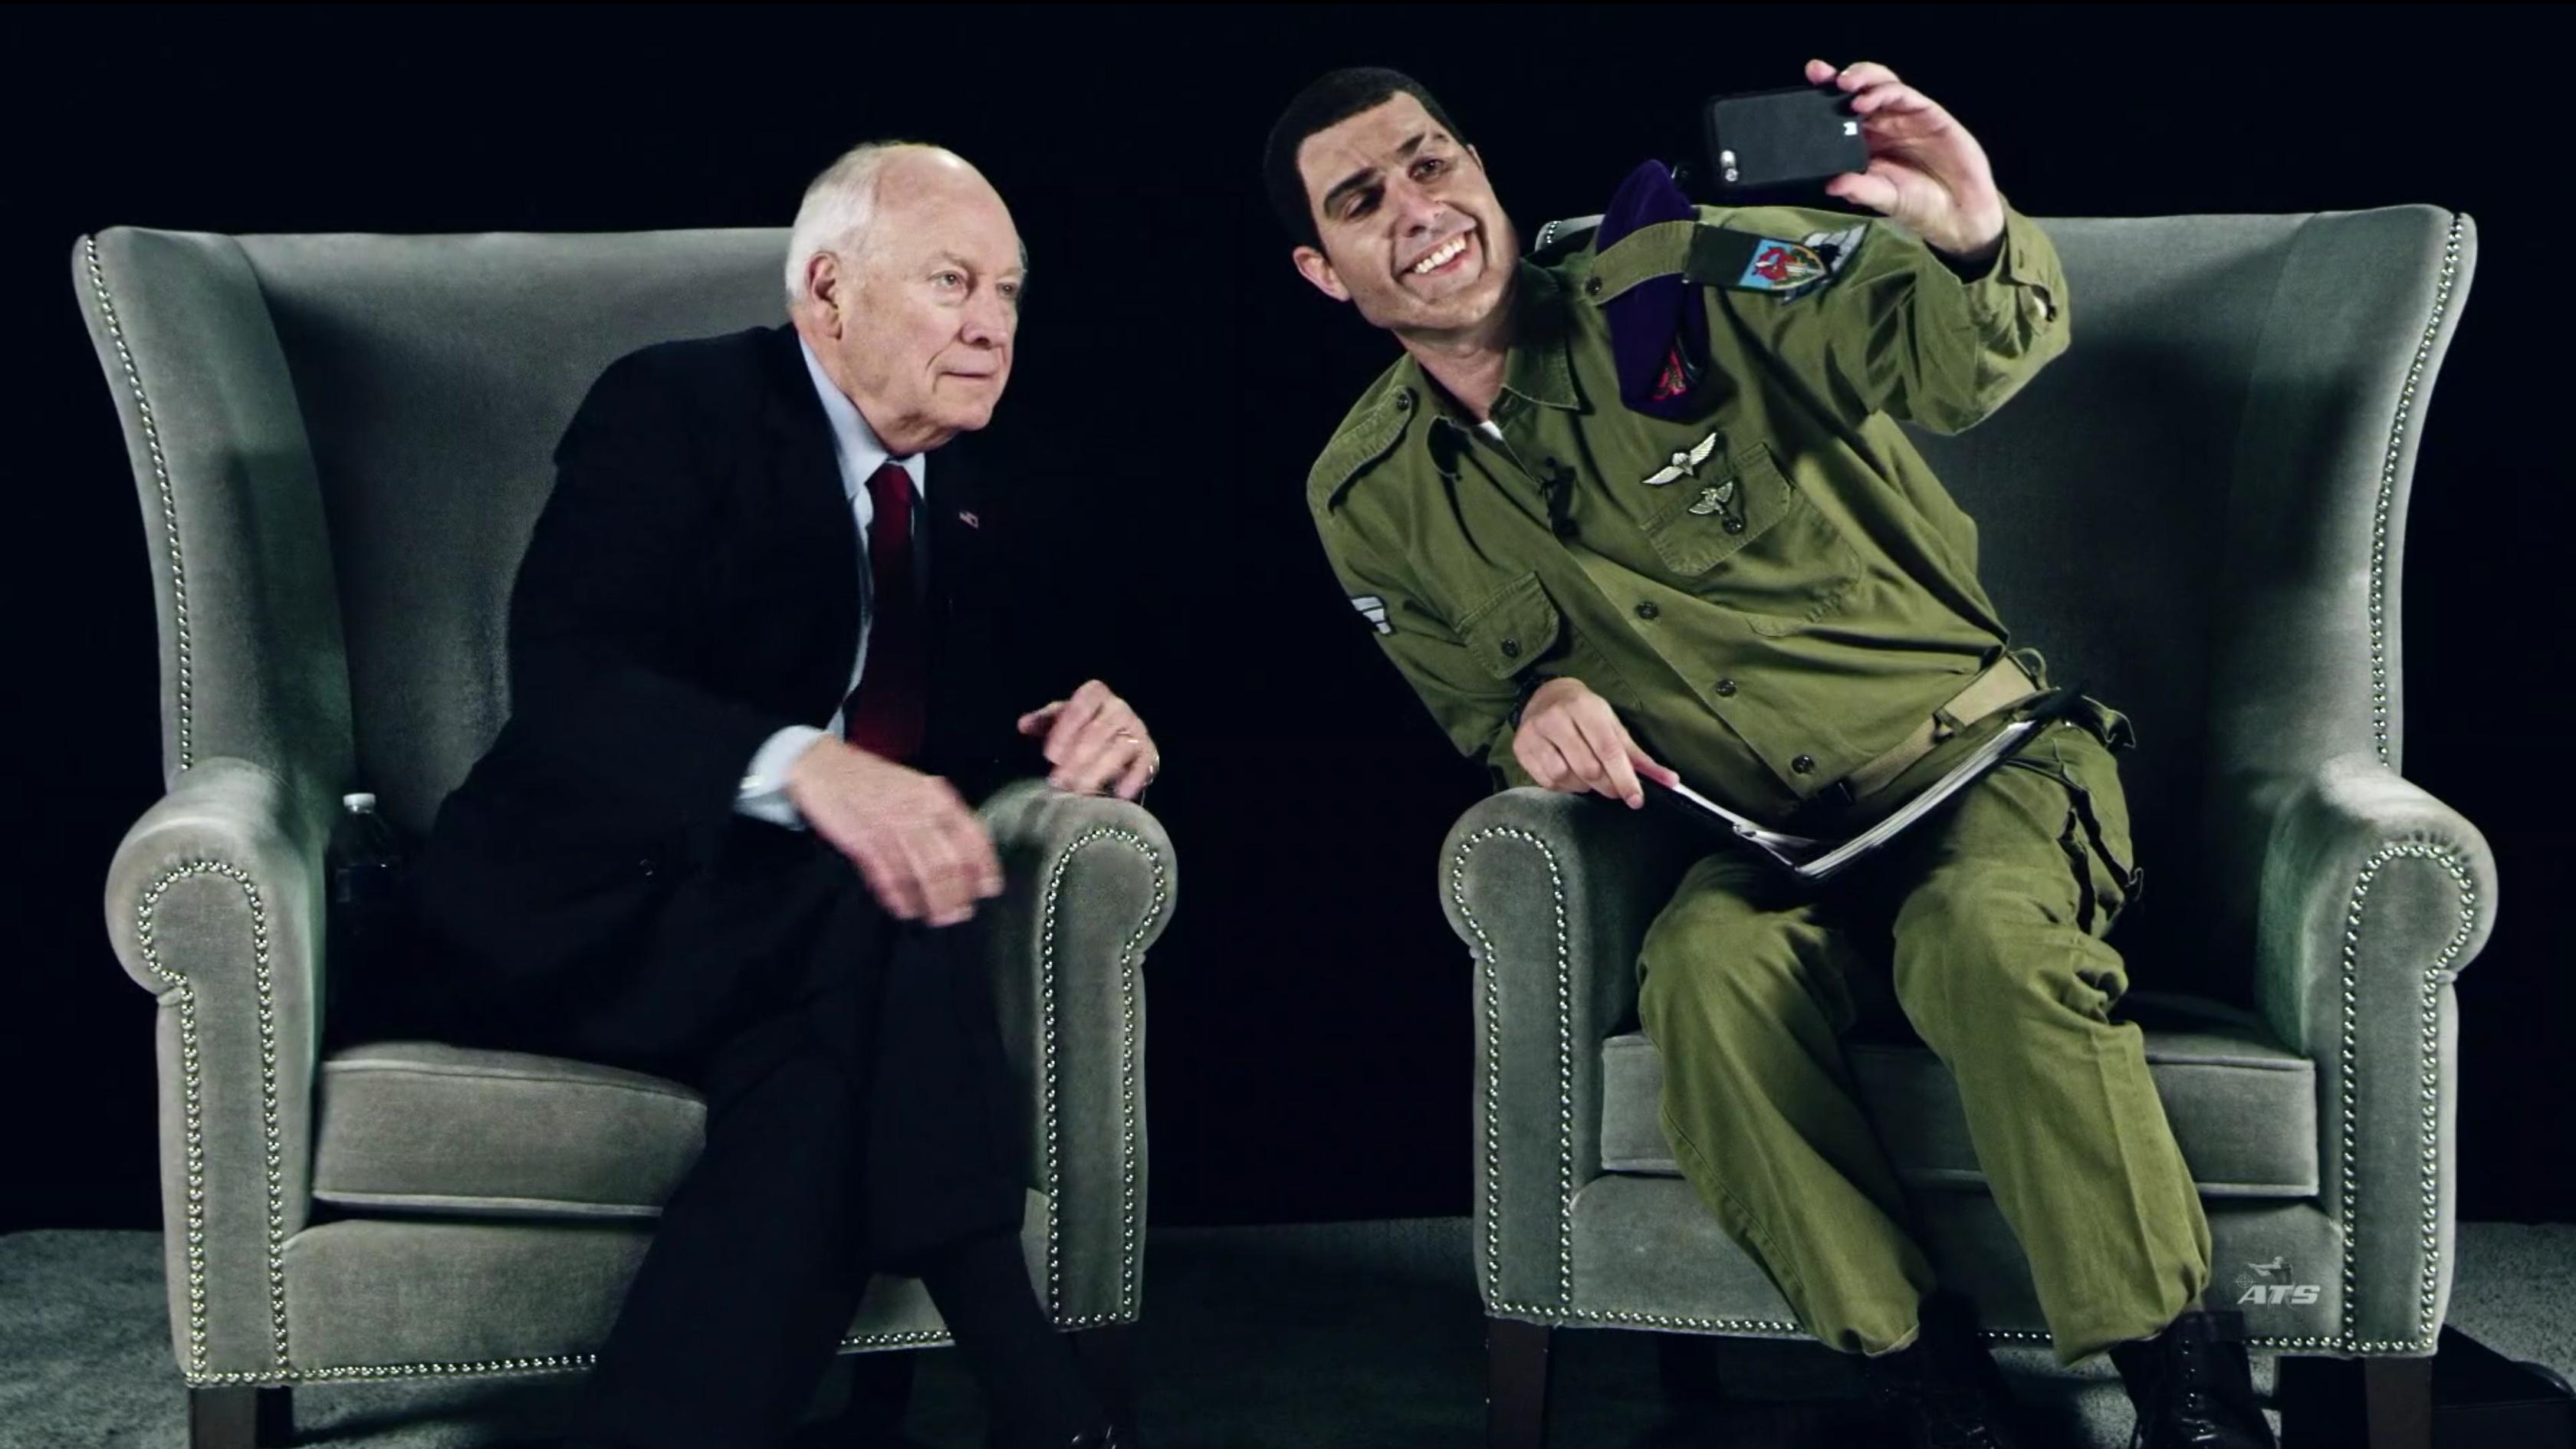 Sacha Baron Cohen and Dick Cheney in Who Is America? (2018)